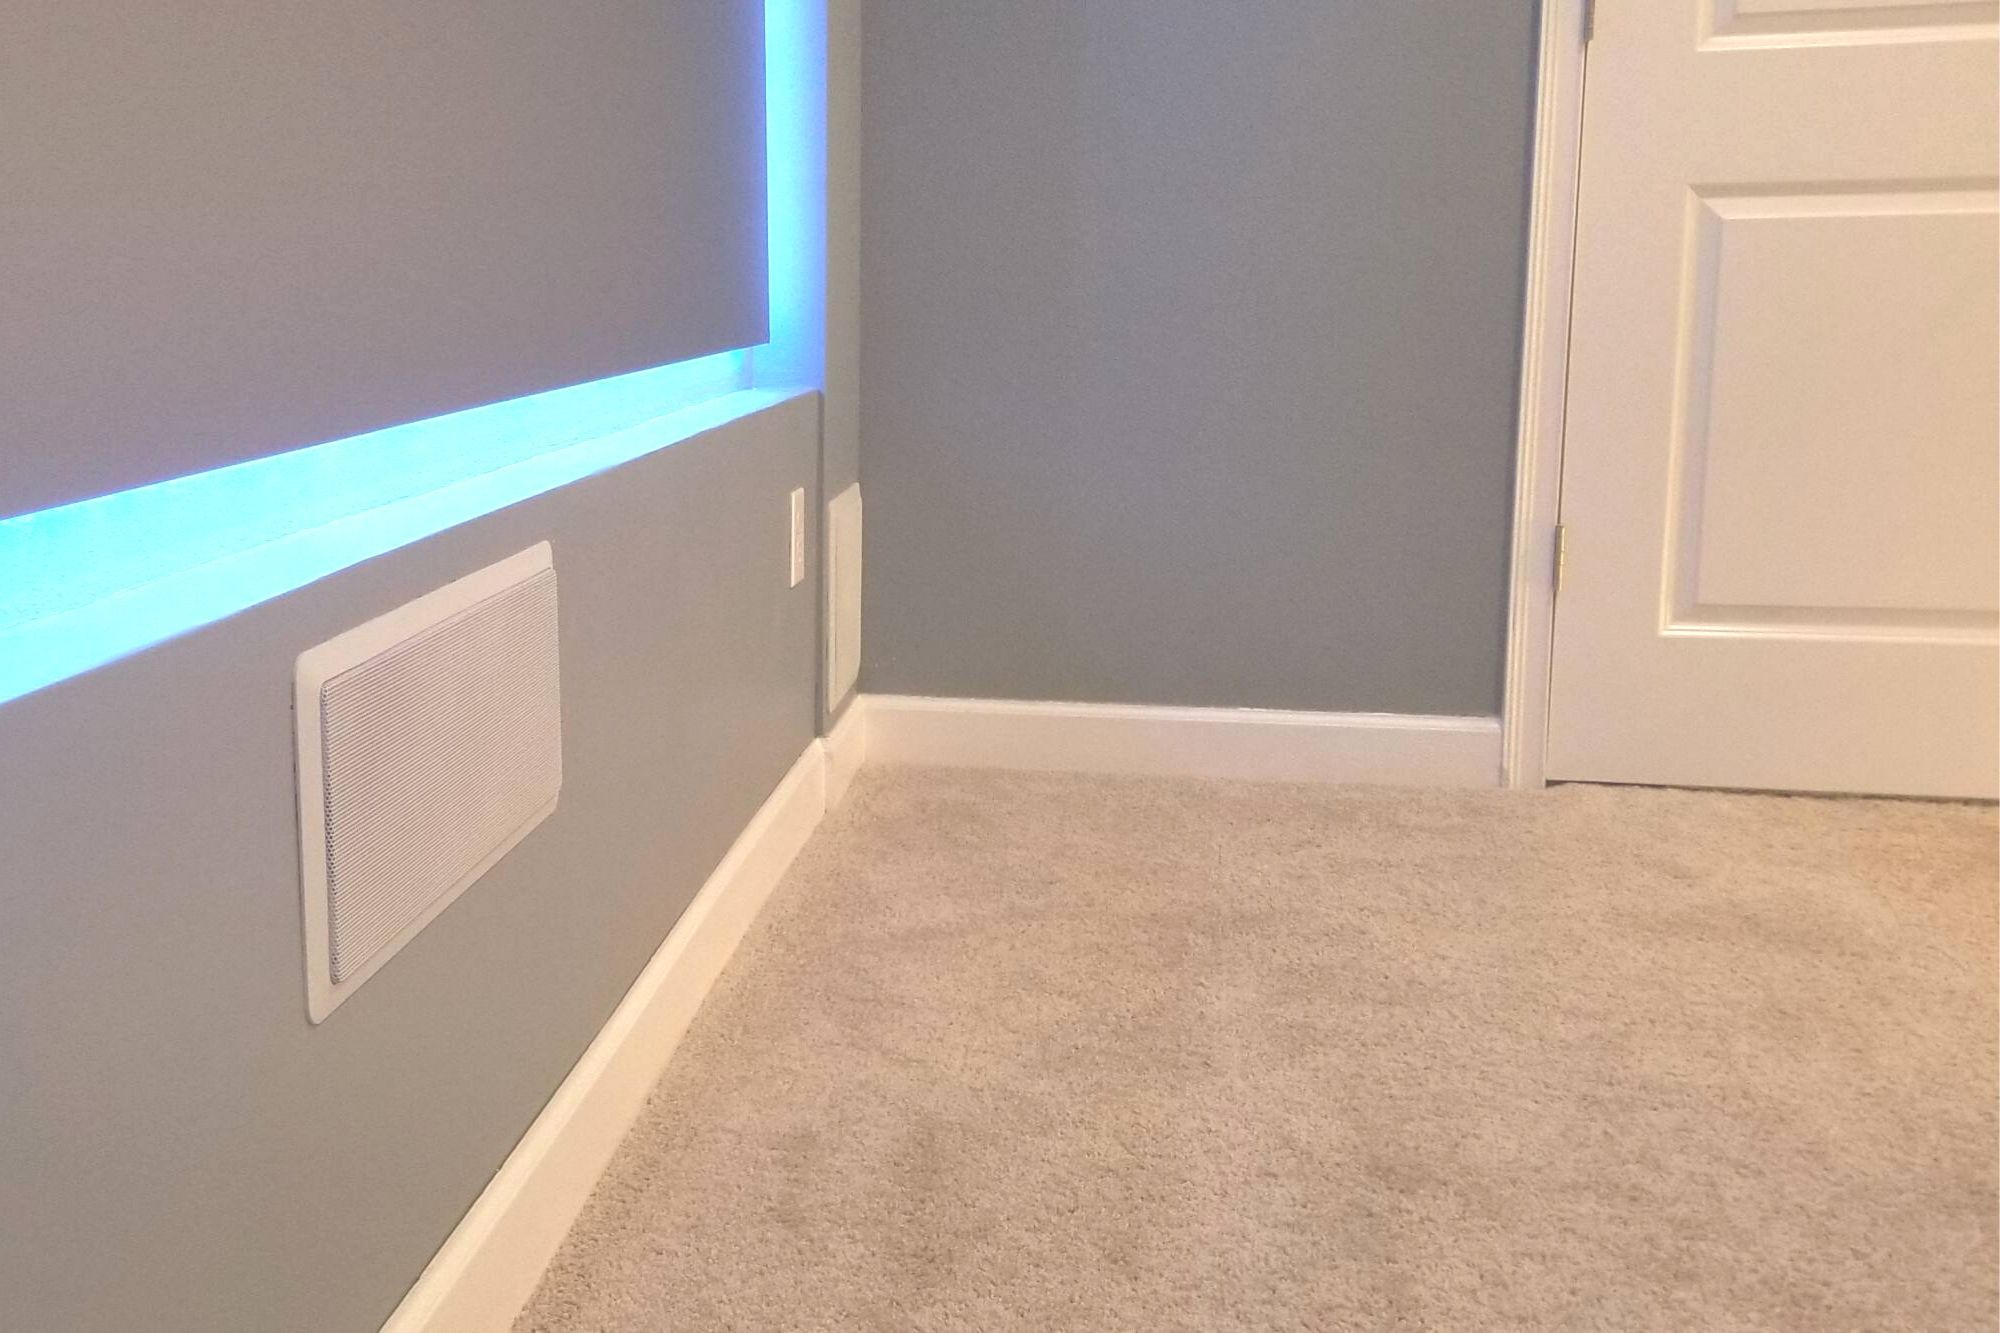 DIY Home Theater Design - The Final Reveal